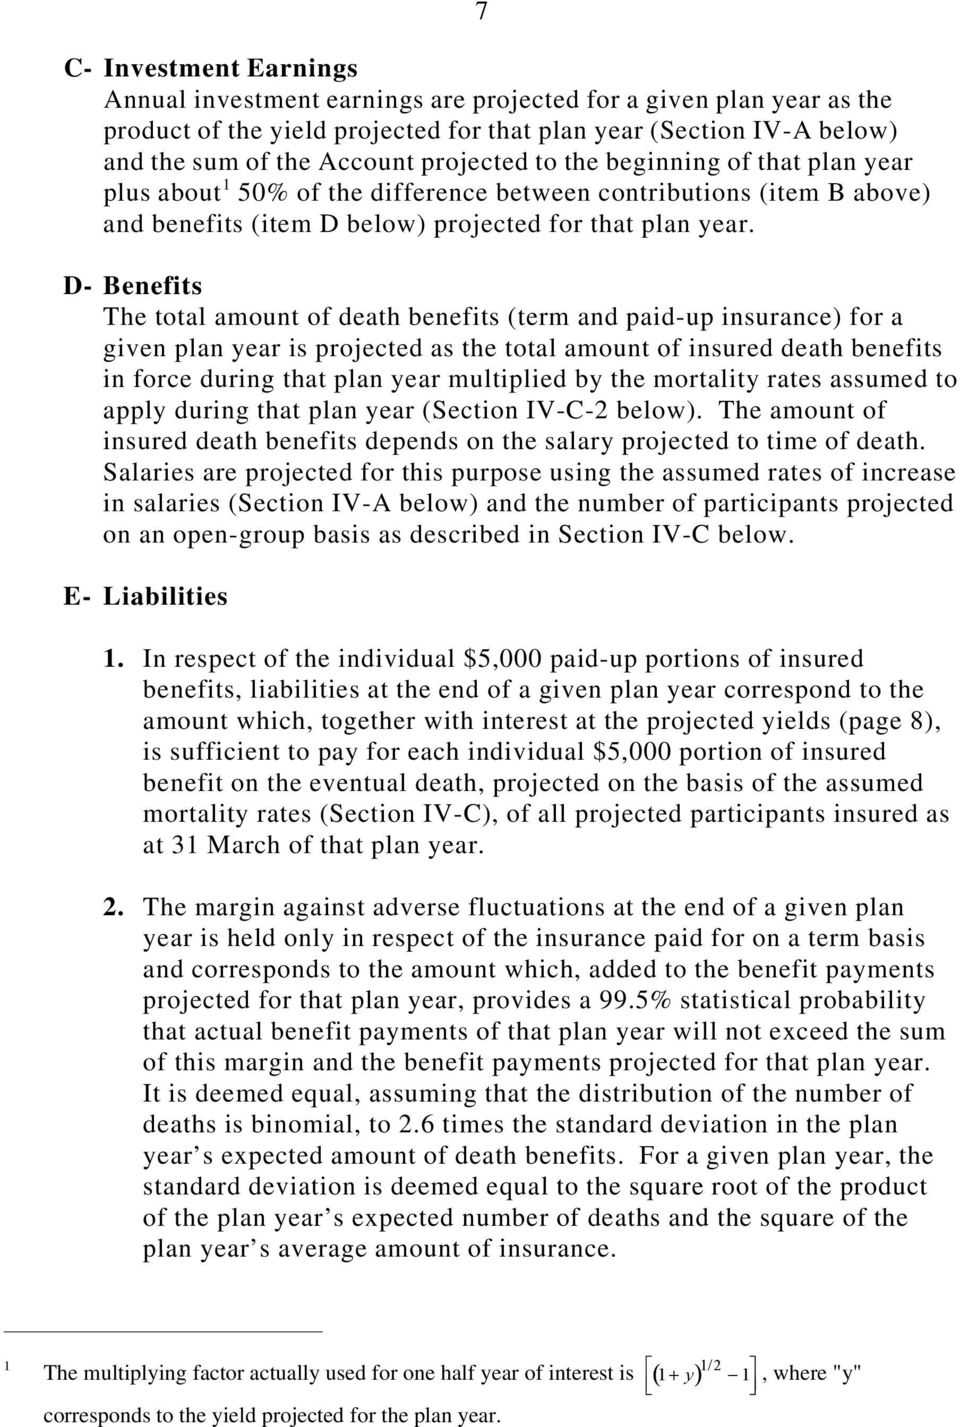 D- Benefits The total amount of death benefits (term and paid-up insurance) for a given plan year is projected as the total amount of insured death benefits in force during that plan year multiplied